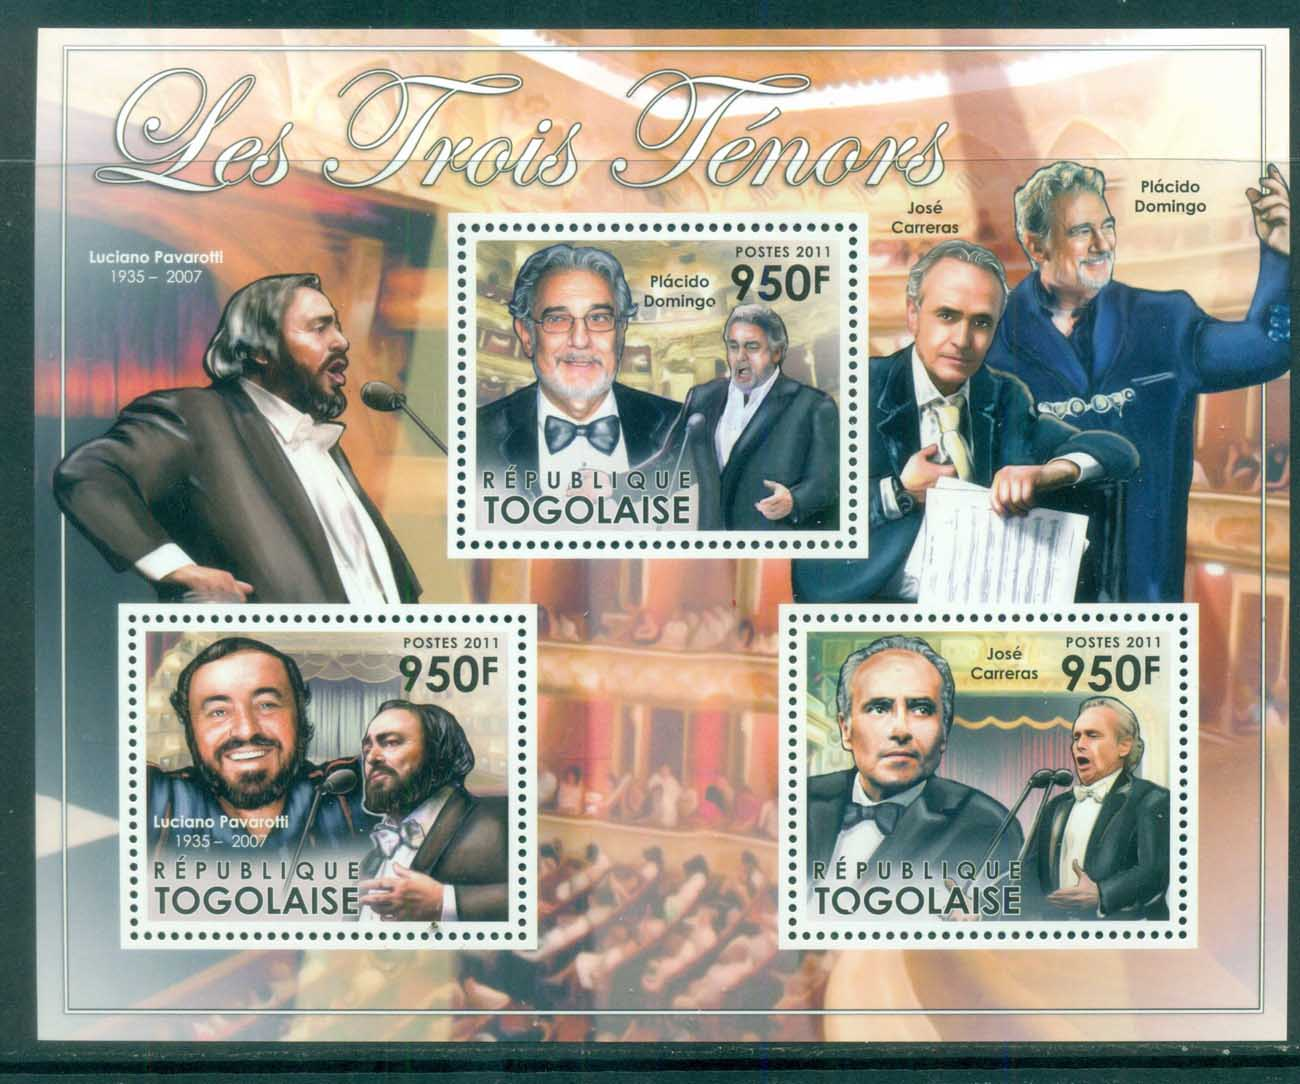 Togo 2011 Famous People, Music, Classical, Three Tenors MS MUH TG008